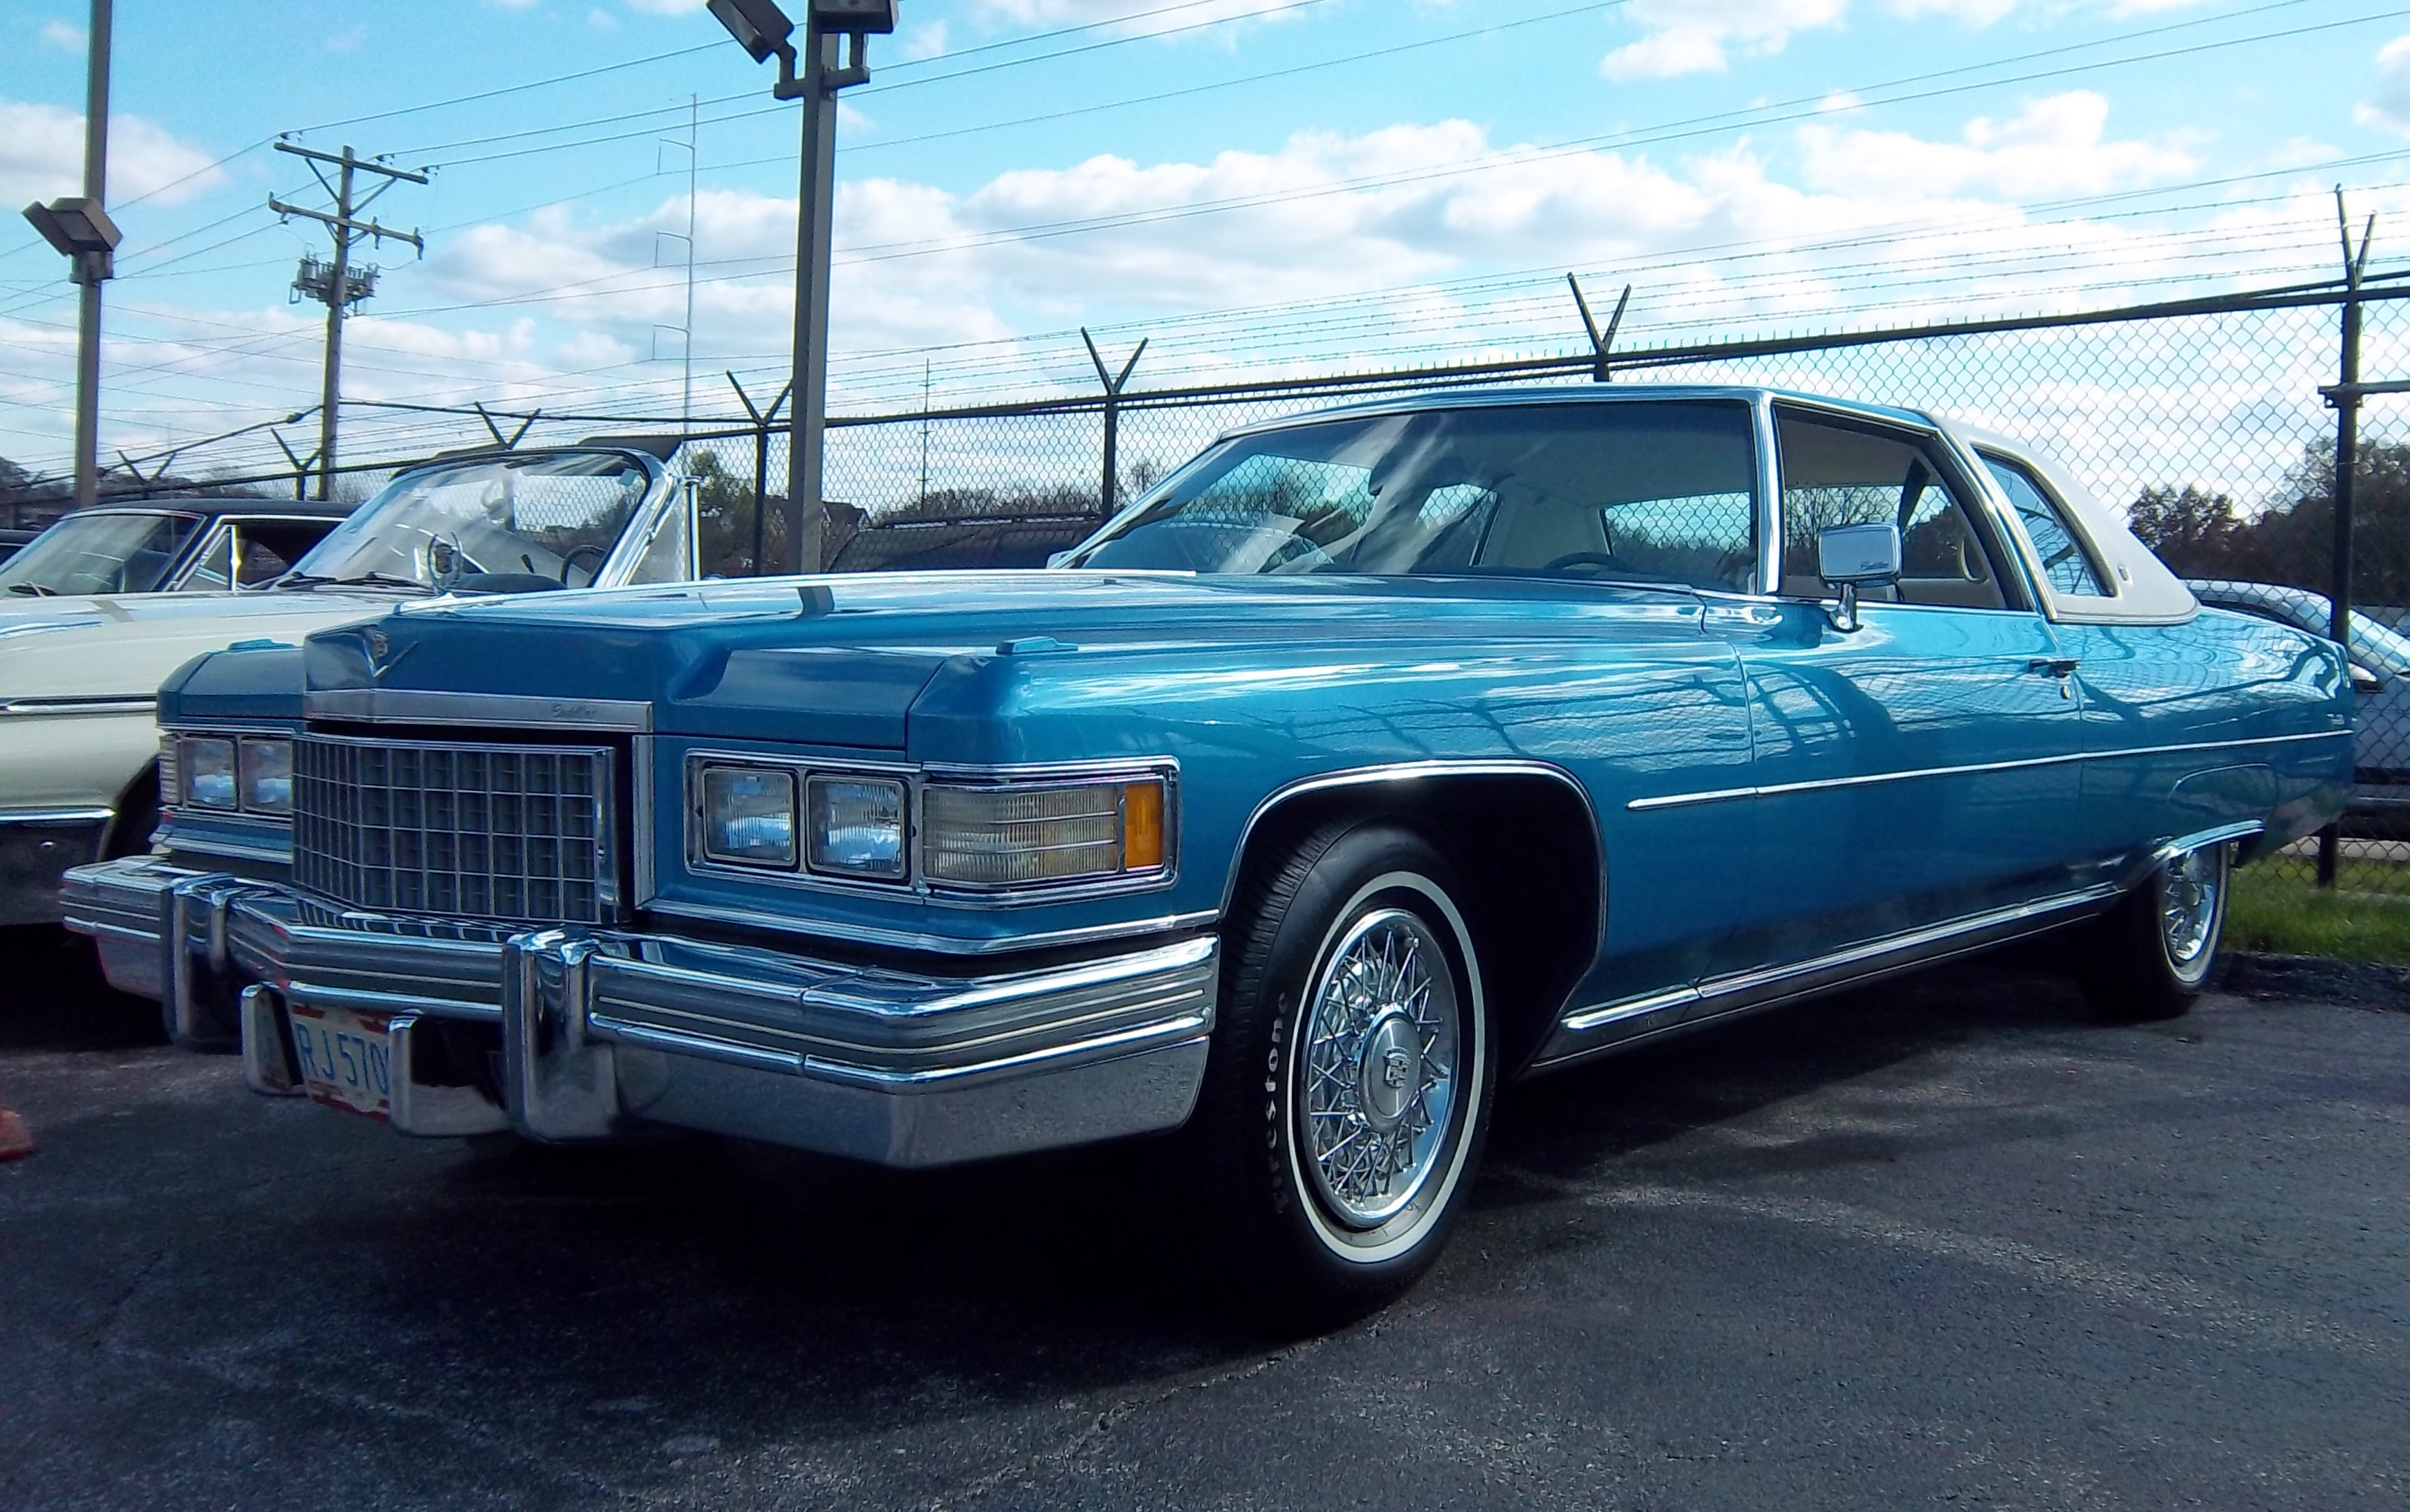 cars sale images trucks classic fleetwood vintage for cadillac and pinterest shorthairgent best on